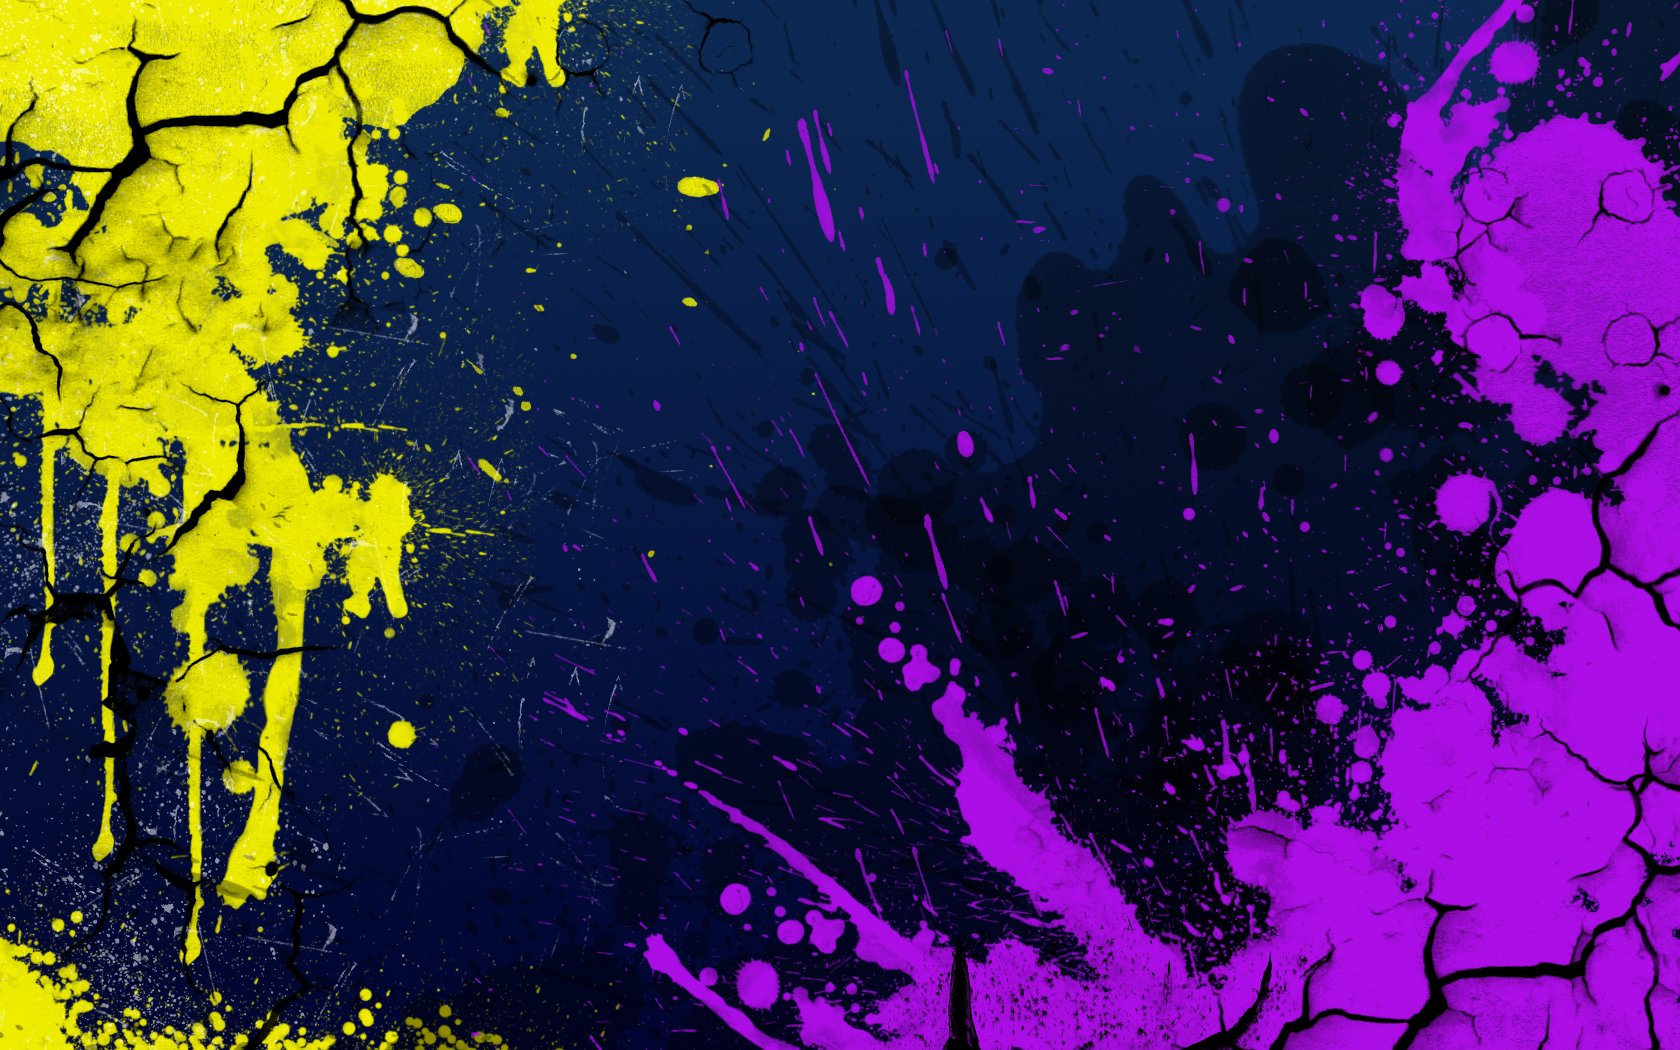 Splatter Wallpaper